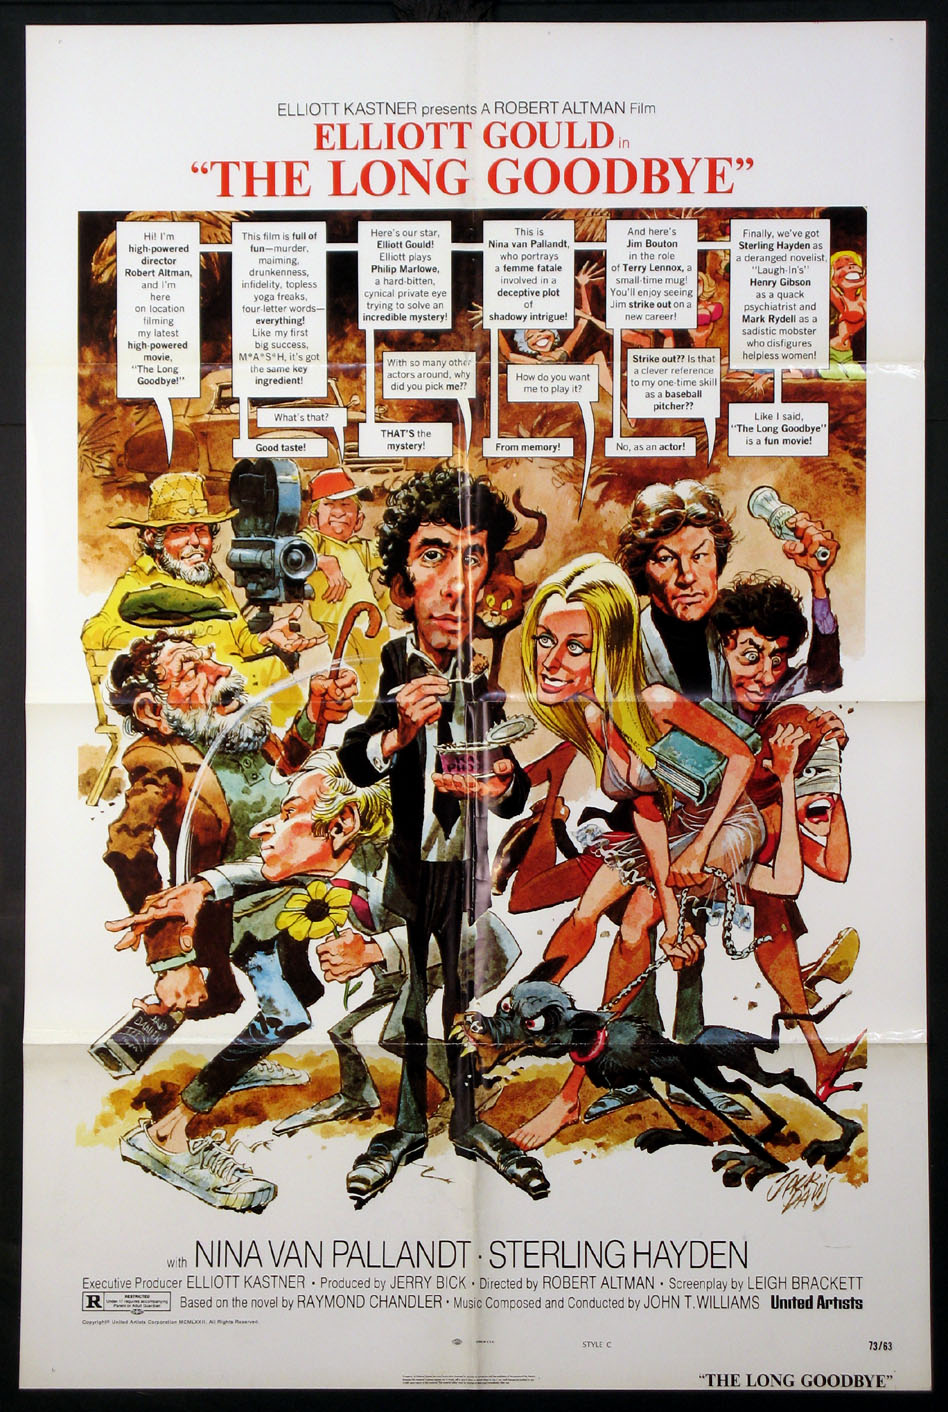 LONG GOODBYE, THE @ FilmPosters.com